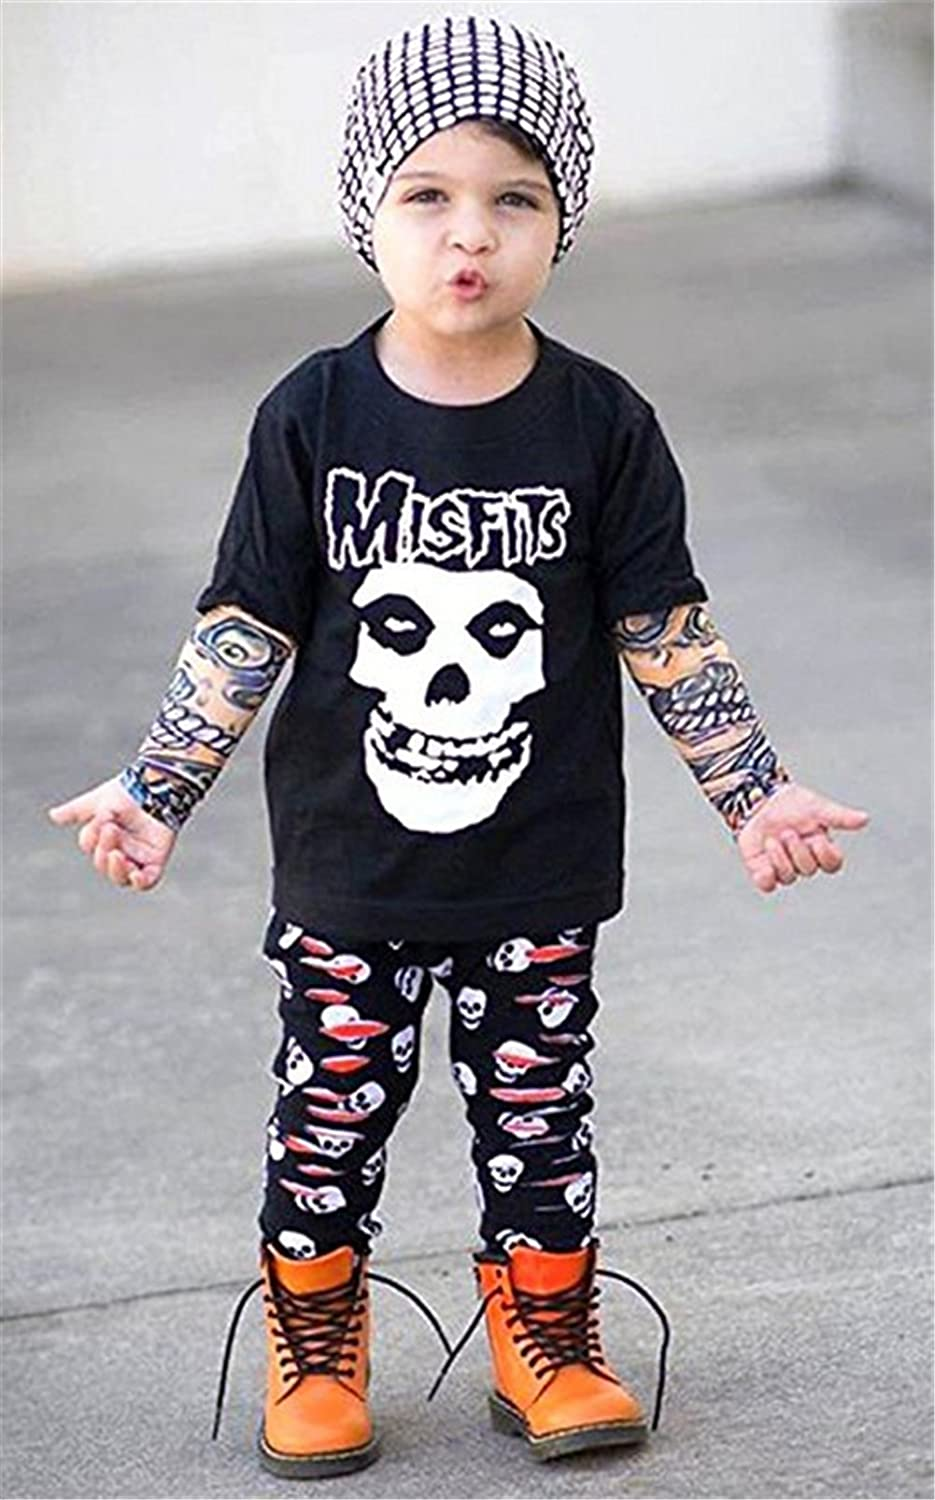 EGELEXY Kids Toddler Baby Boys Misfits Skull Printed T-Shirt Pants Elbow Pad Outfits